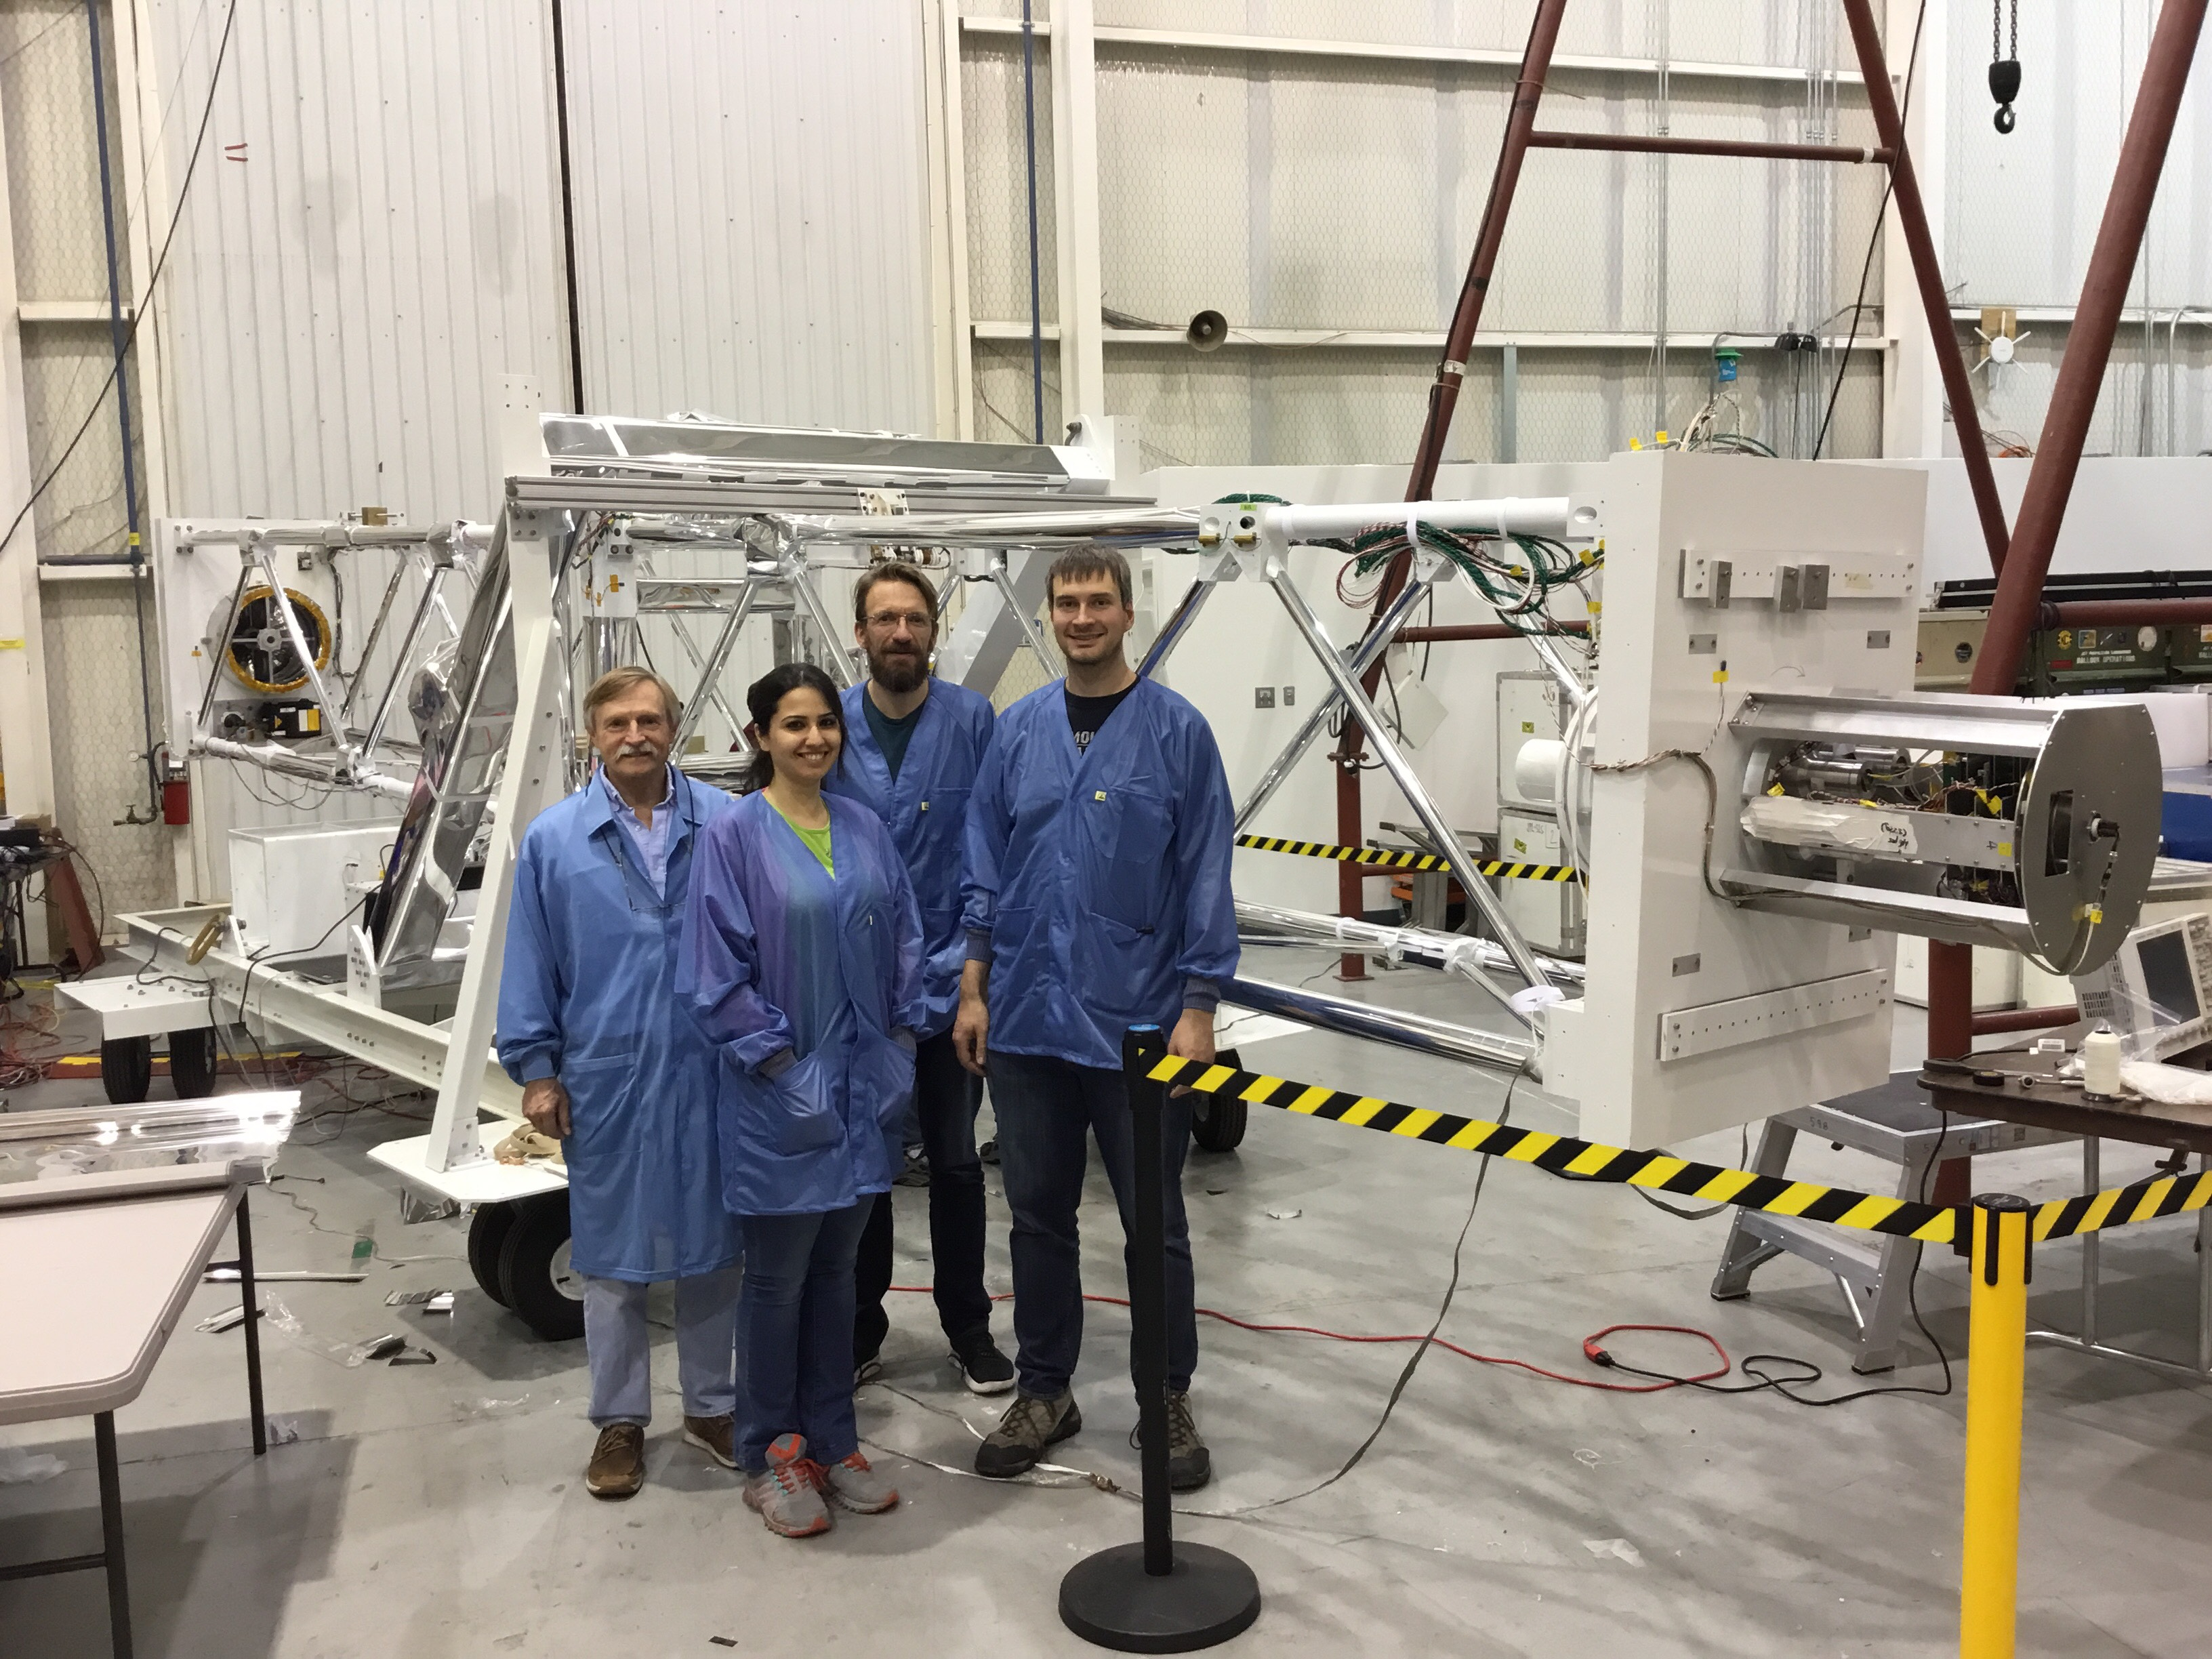 From left to right: Electrical engineer Pal Dowkontt, graduate student Banafsheh Beheshtipour, Professor Krawczynski, and Professor Kislat in front of the X-ray telescope which will be launched in September 2016 to spy on black holes and neutron stars in our Milky Way galaxy.